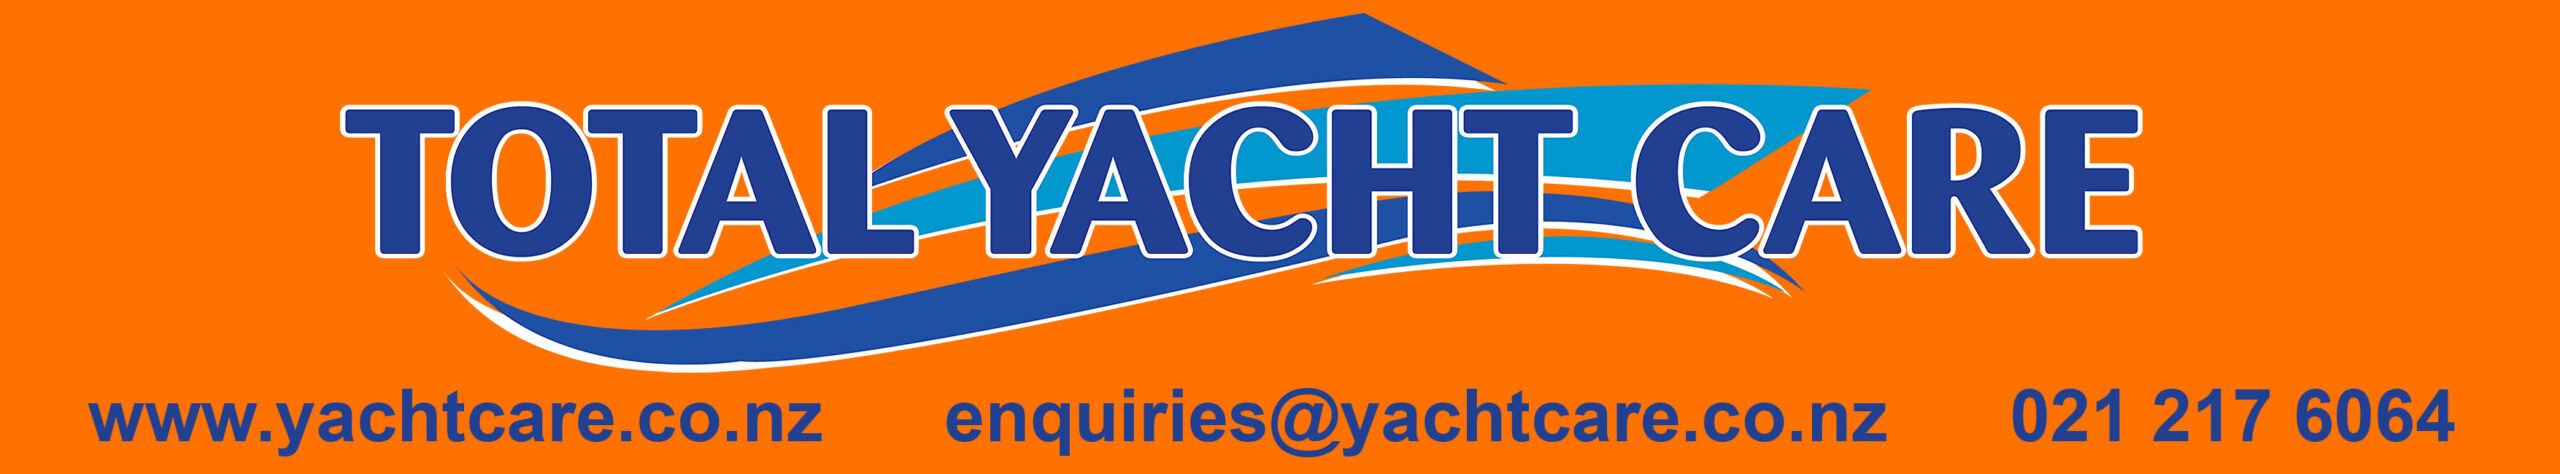 Total-Yacht-Care-scaled